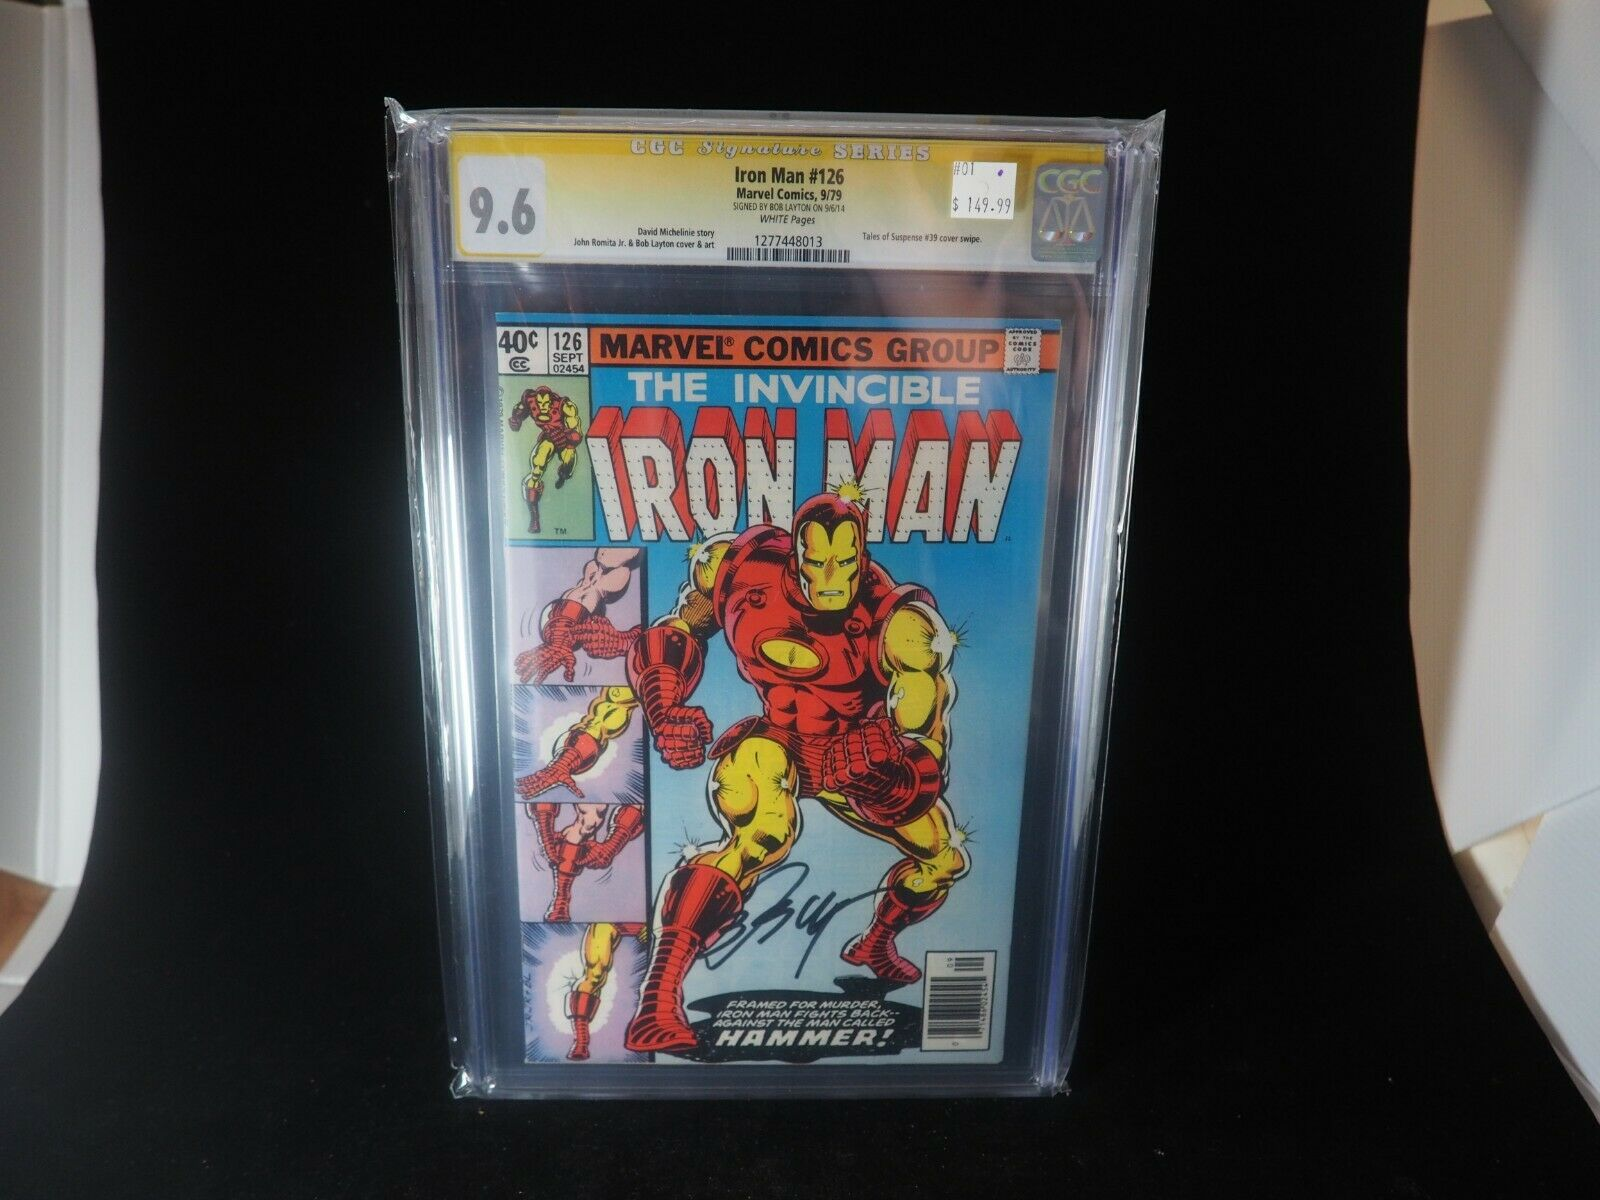 CGC SS 9.6 Iron Man #126 signed Bob Layton